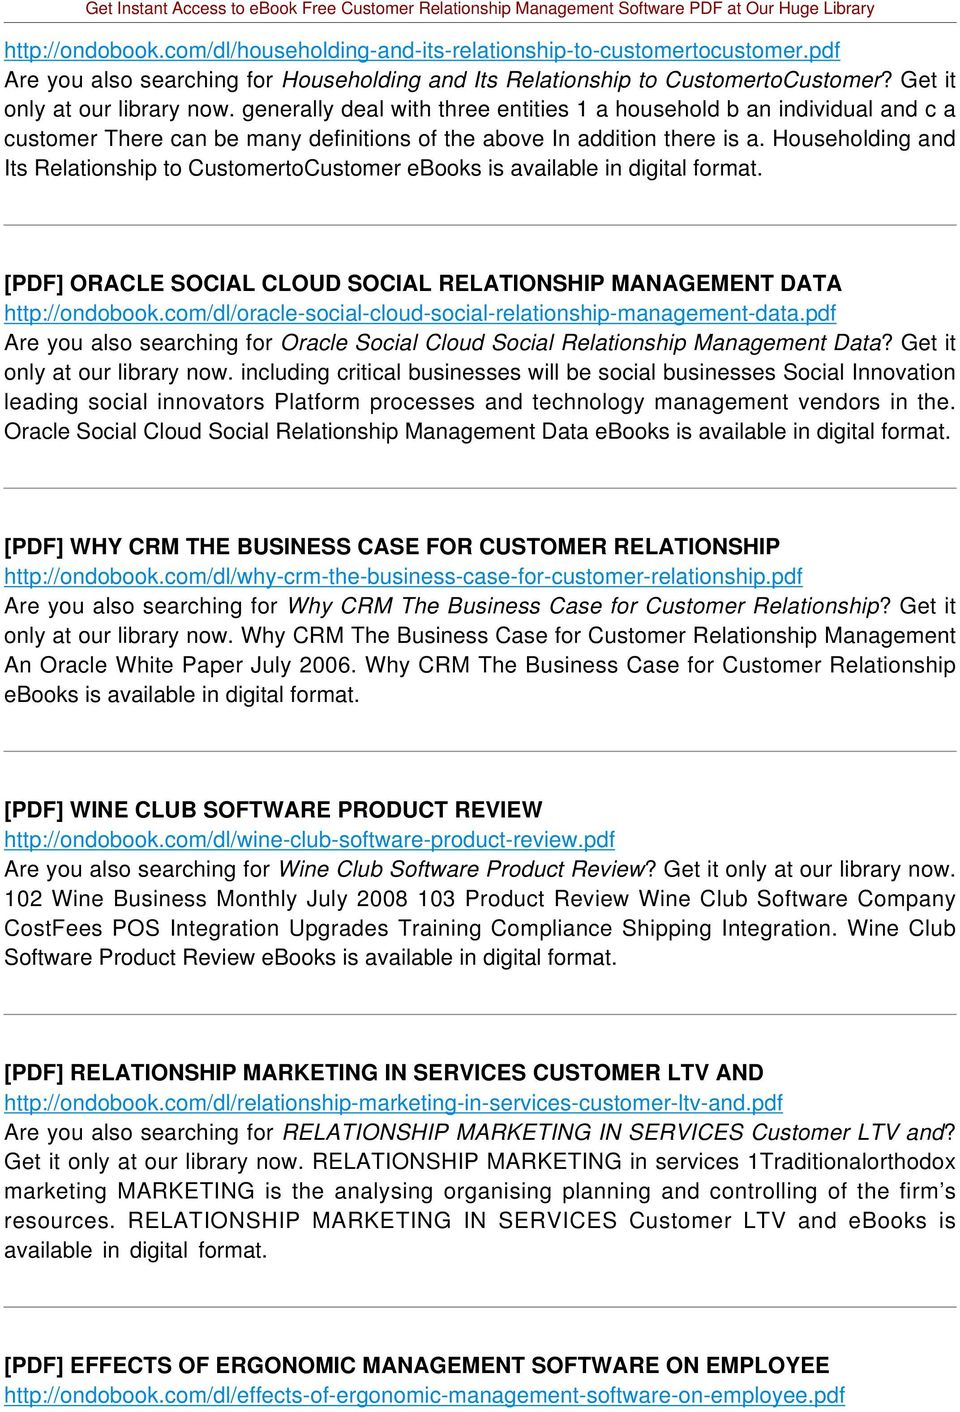 Householding and Its Relationship to CustomertoCustomer ebooks is available in digital [PDF] ORACLE SOCIAL CLOUD SOCIAL RELATIONSHIP MANAGEMENT DATA http://ondobook.